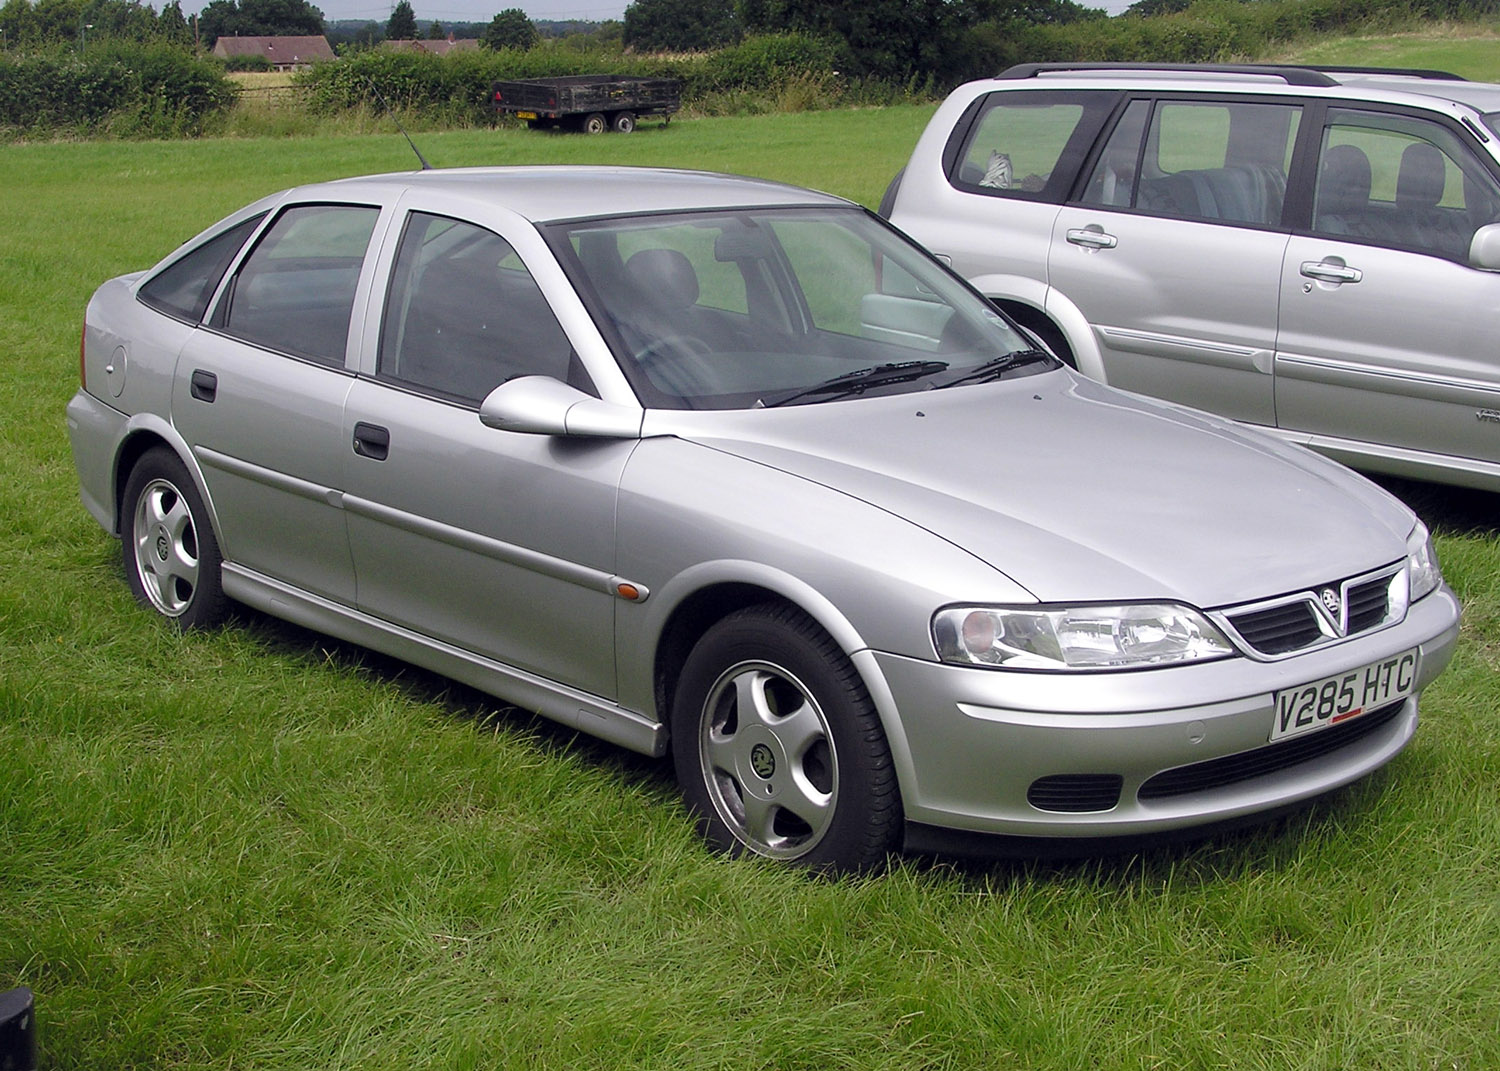 File 2000 Vauxhall Vectra 1point8 Arp Jpg Wikimedia Commons